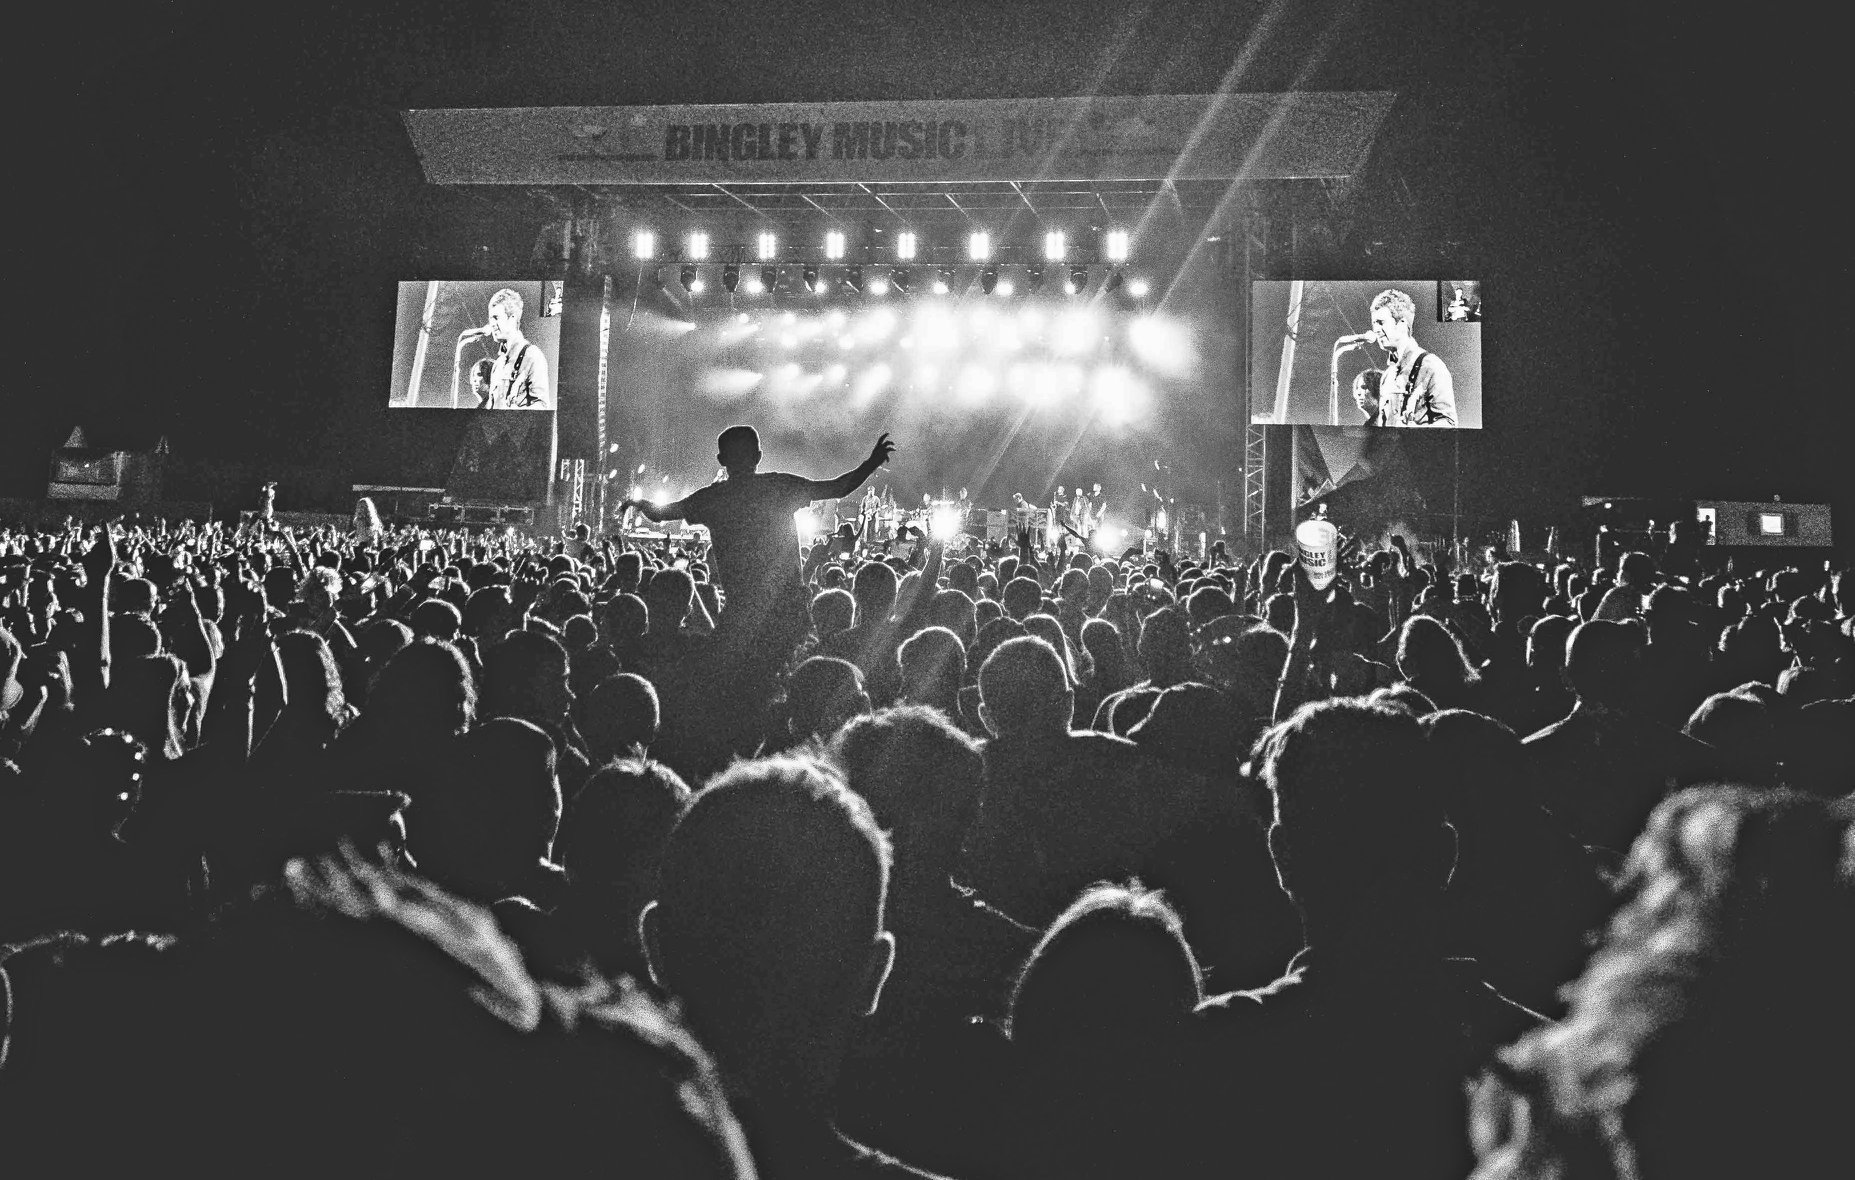 Bingley Music Live news: A big thank you to Mr. Noel Gallagher and his High Flying Birds for providing an…